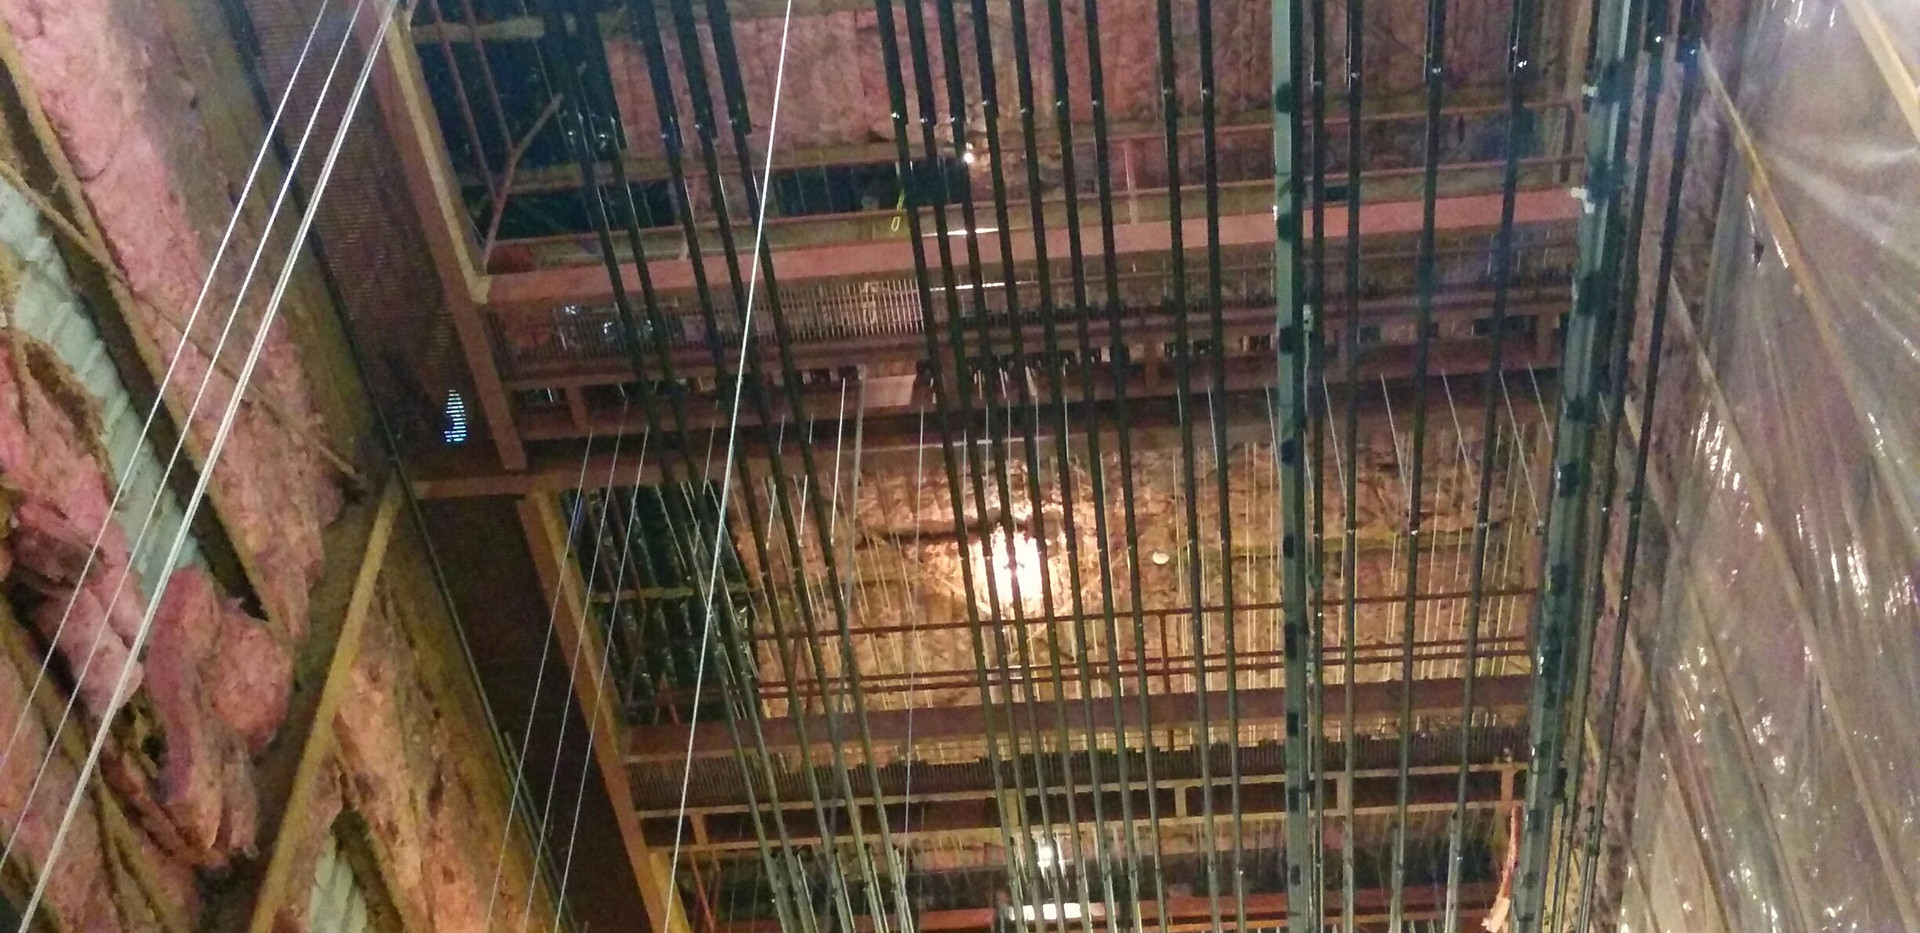 Ceiling View of Bremerton Community Theater Rigging Installation